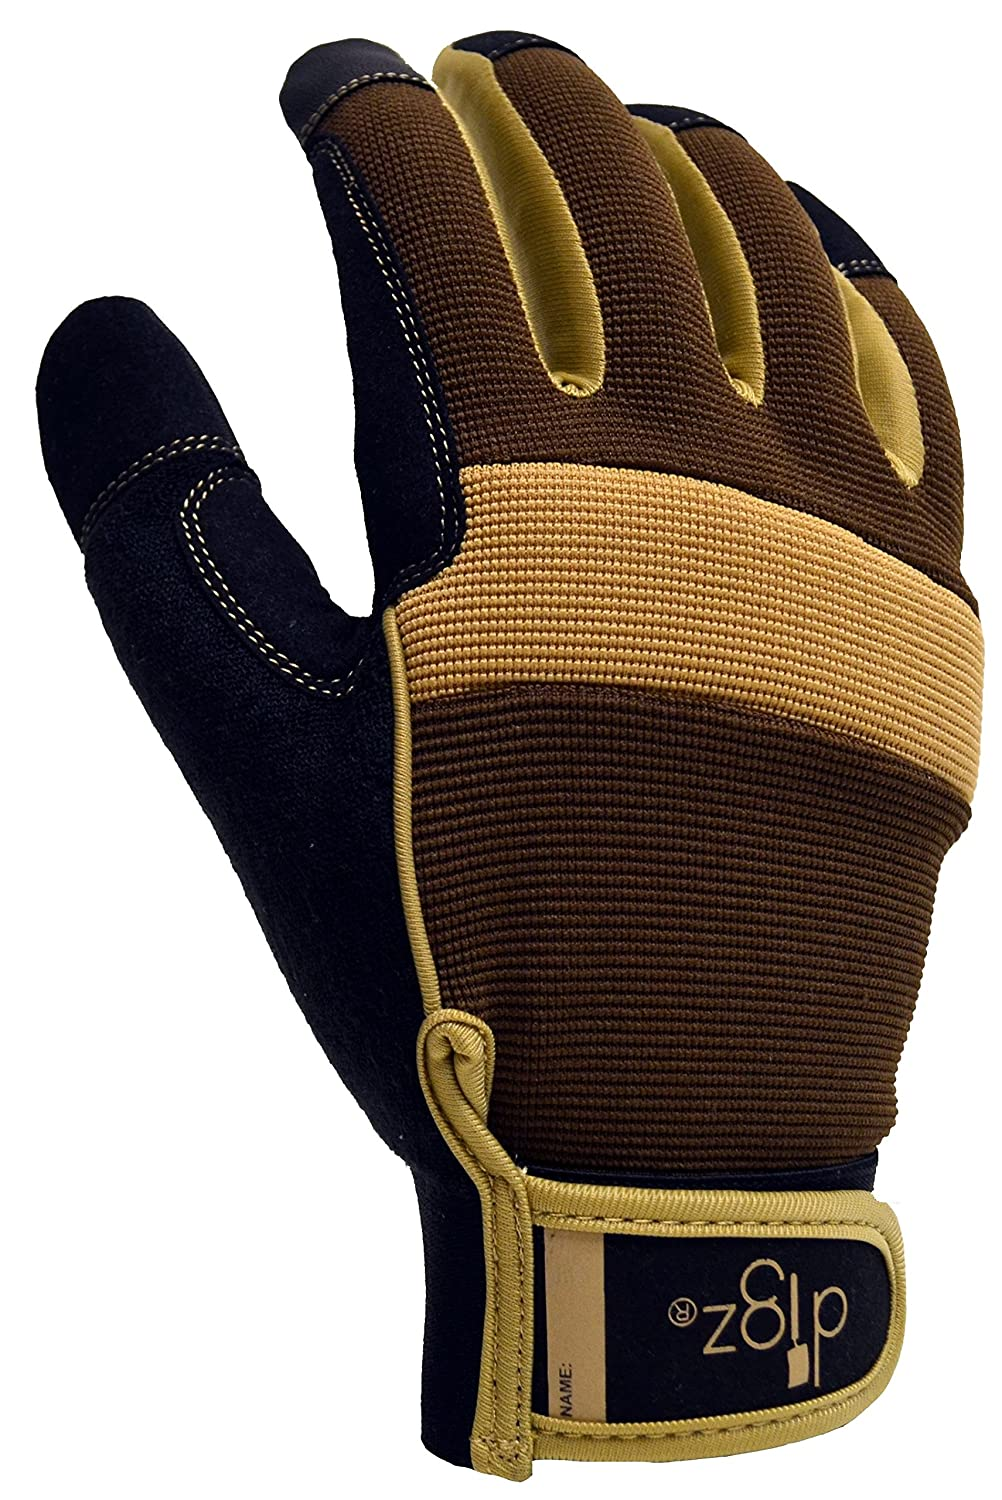 Digz 7673-23 Large Men\'s Gardening Gloves with Touchscreen Fingers - Brown